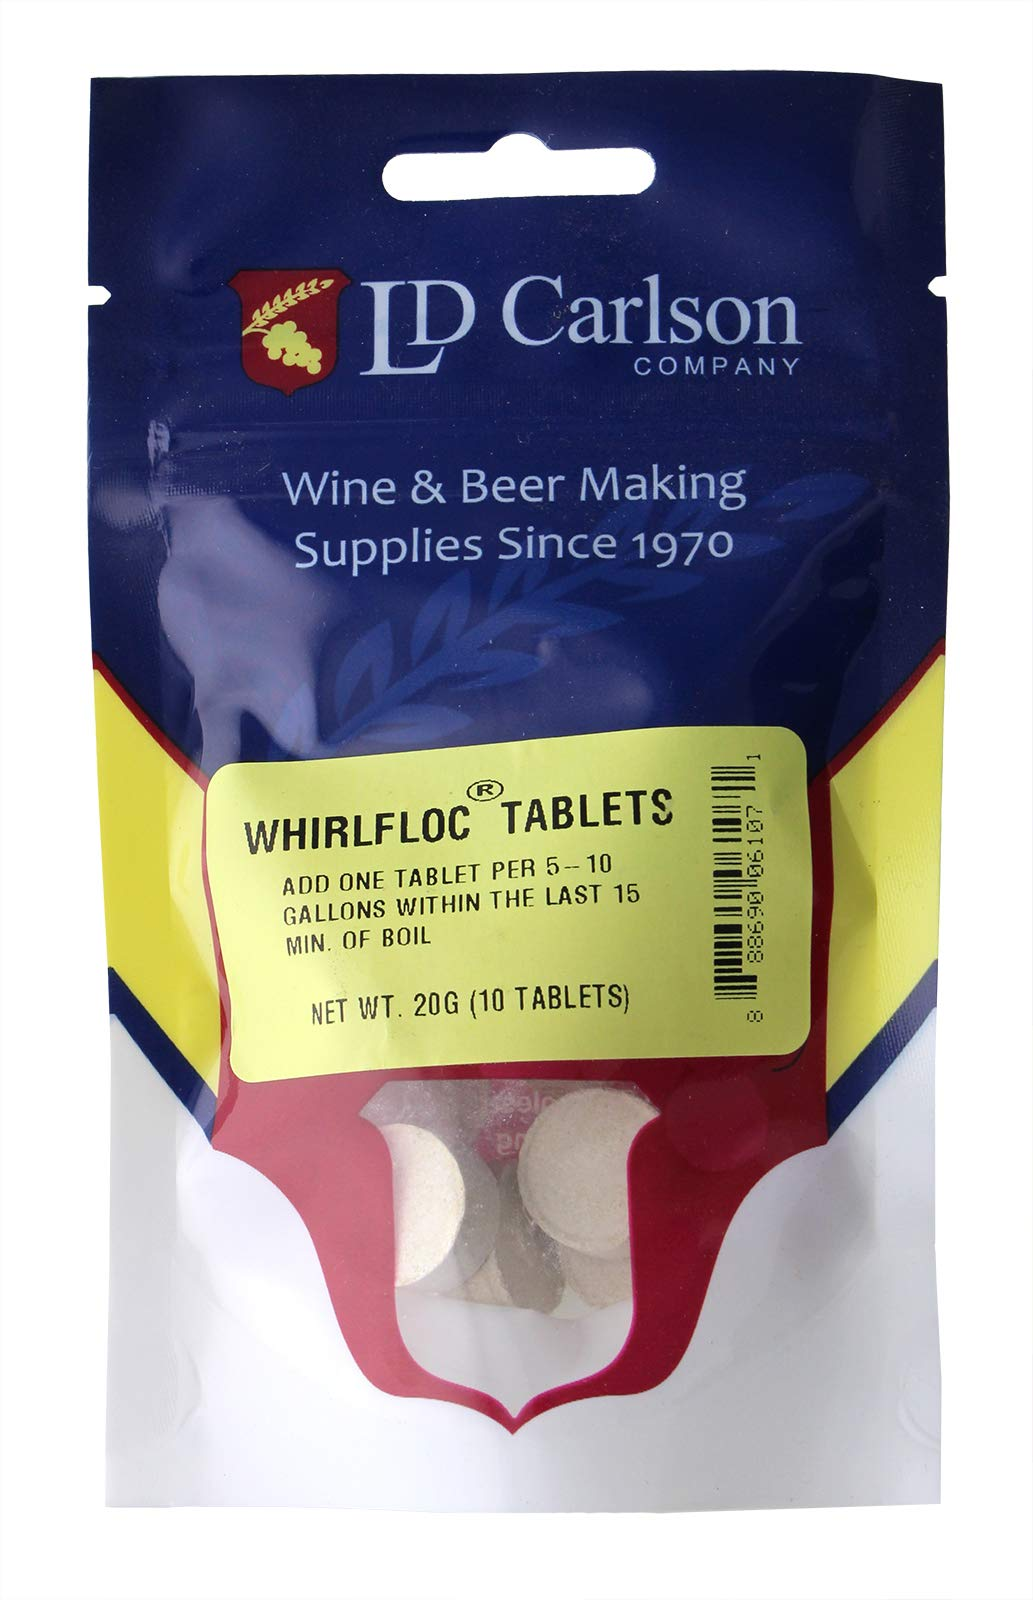 Whirlfloc Tablets- 10 tablets